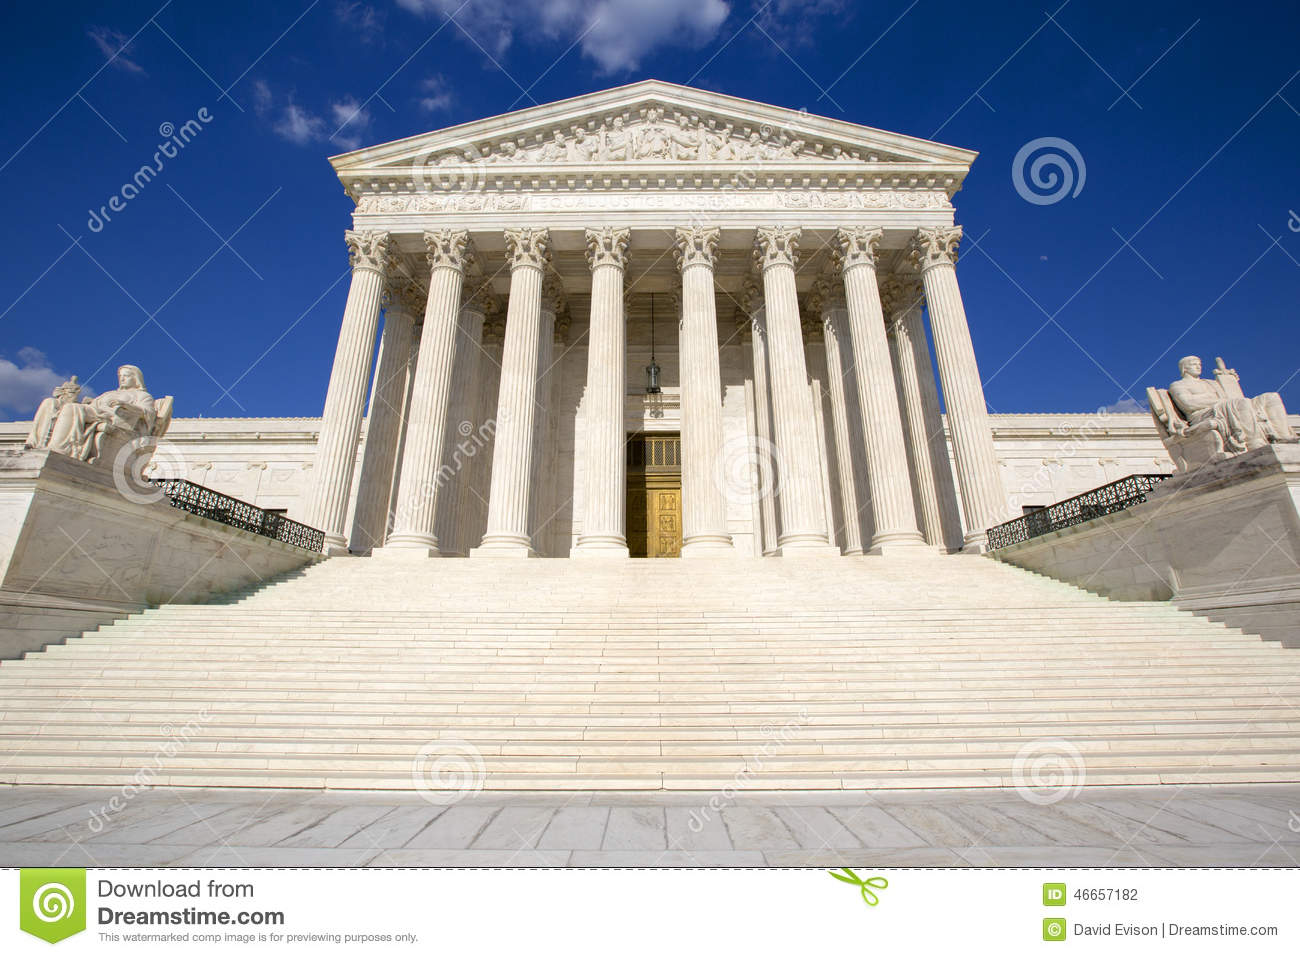 The Supreme courthouse.